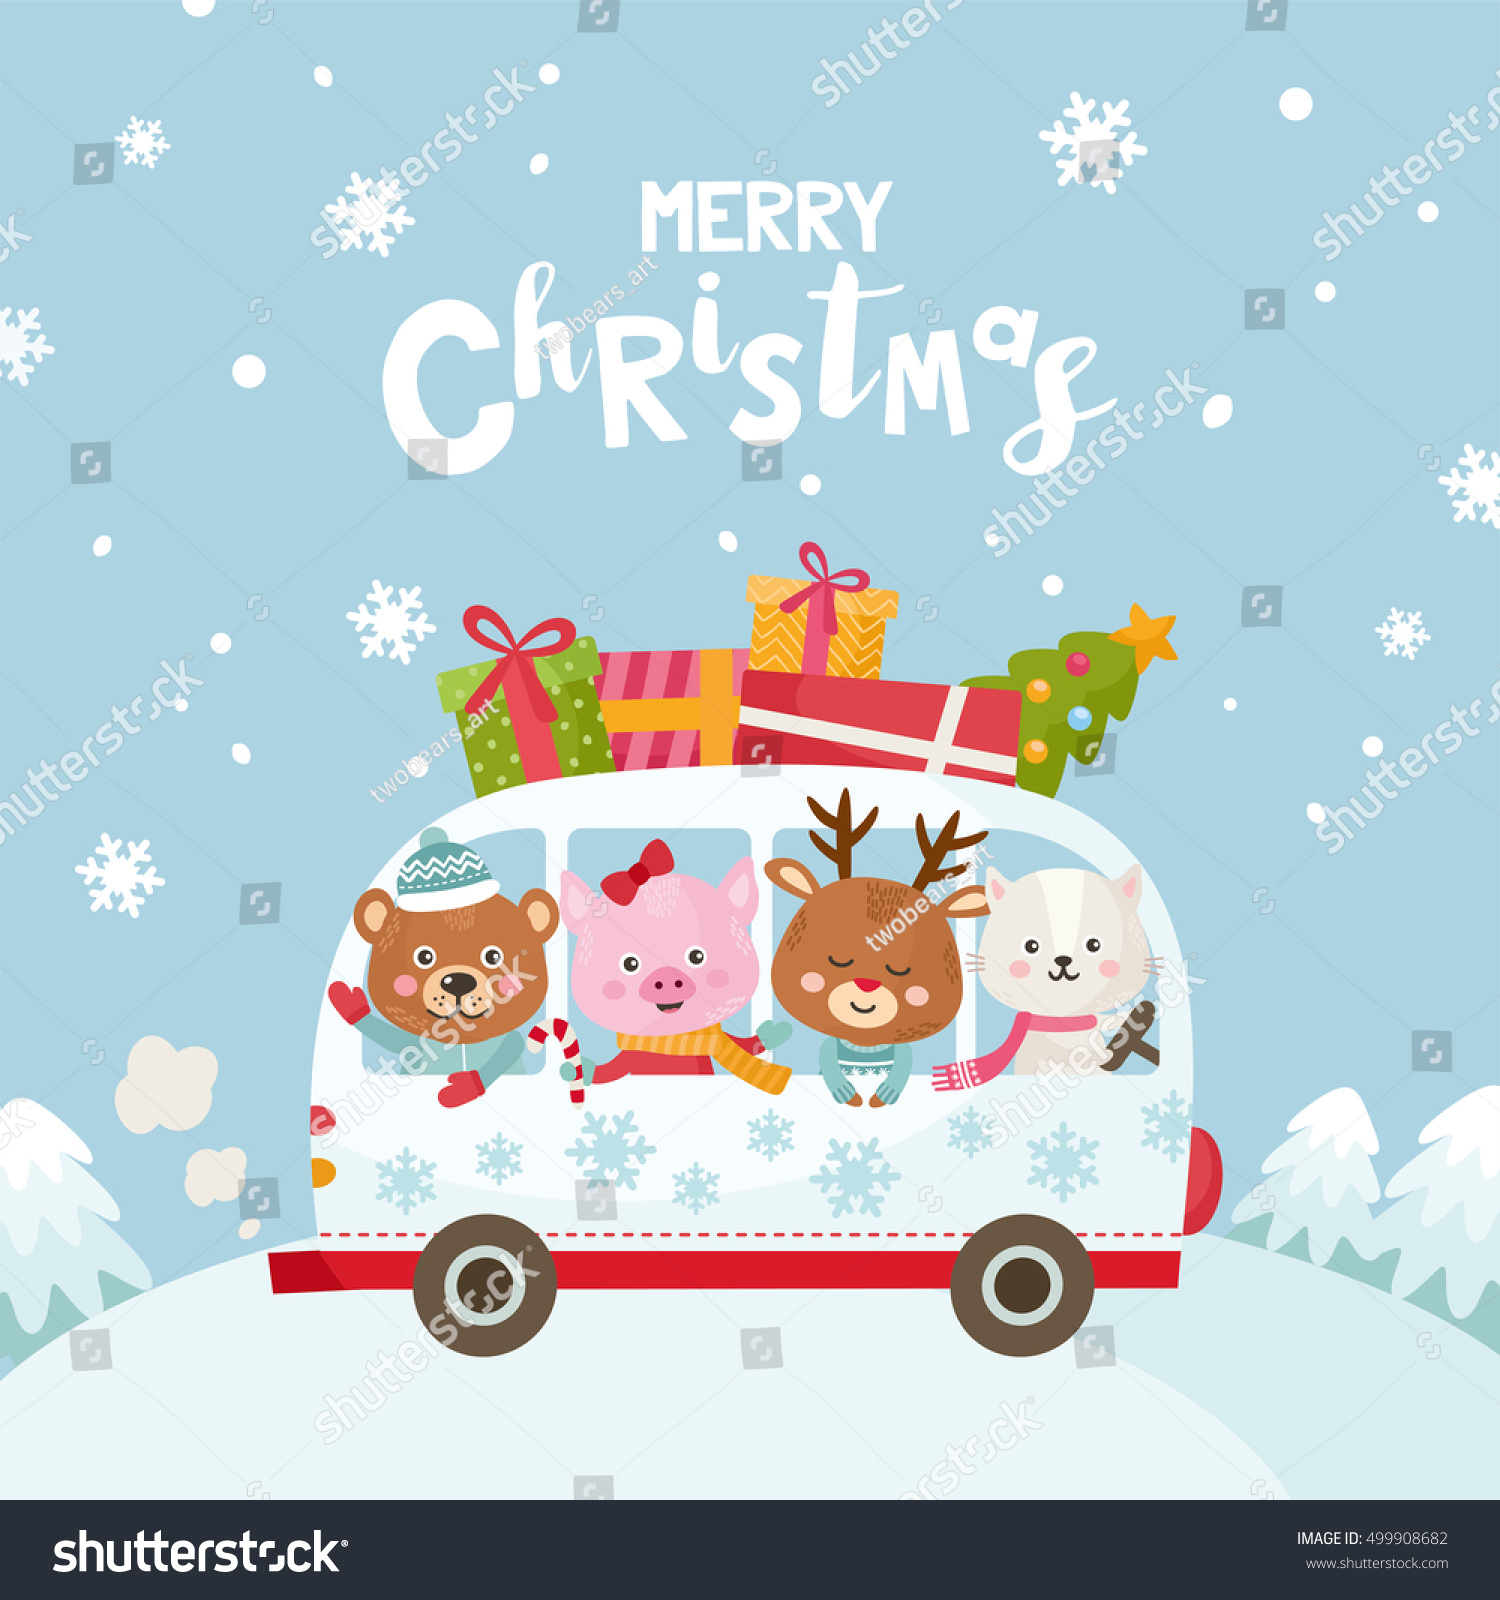 Merry Christmas Greeting Card Cute Animals Stock Vector Royalty